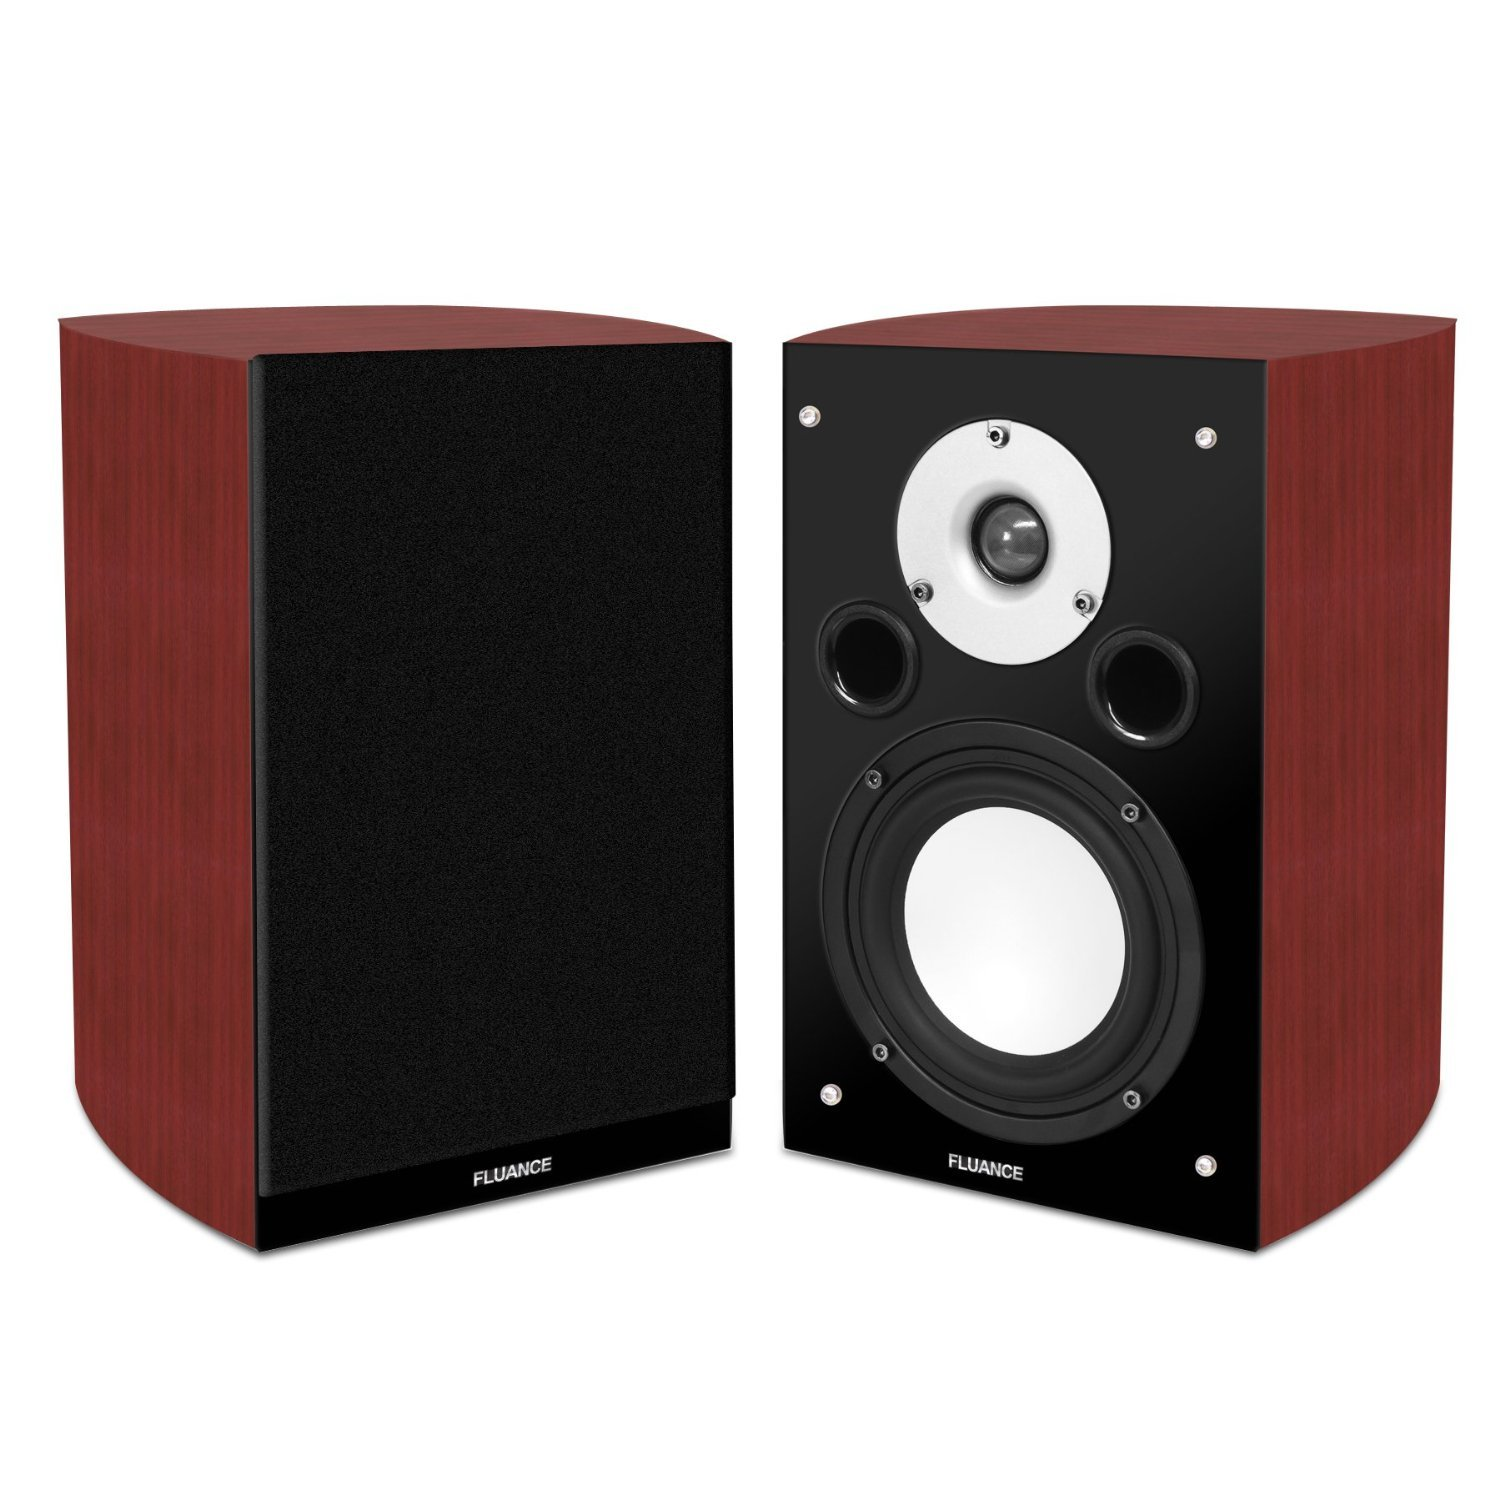 Fluance XL7S High Performance Two-way Bookshelf Surround Sound Speakers for Home Theater and Music Systems by Fluance